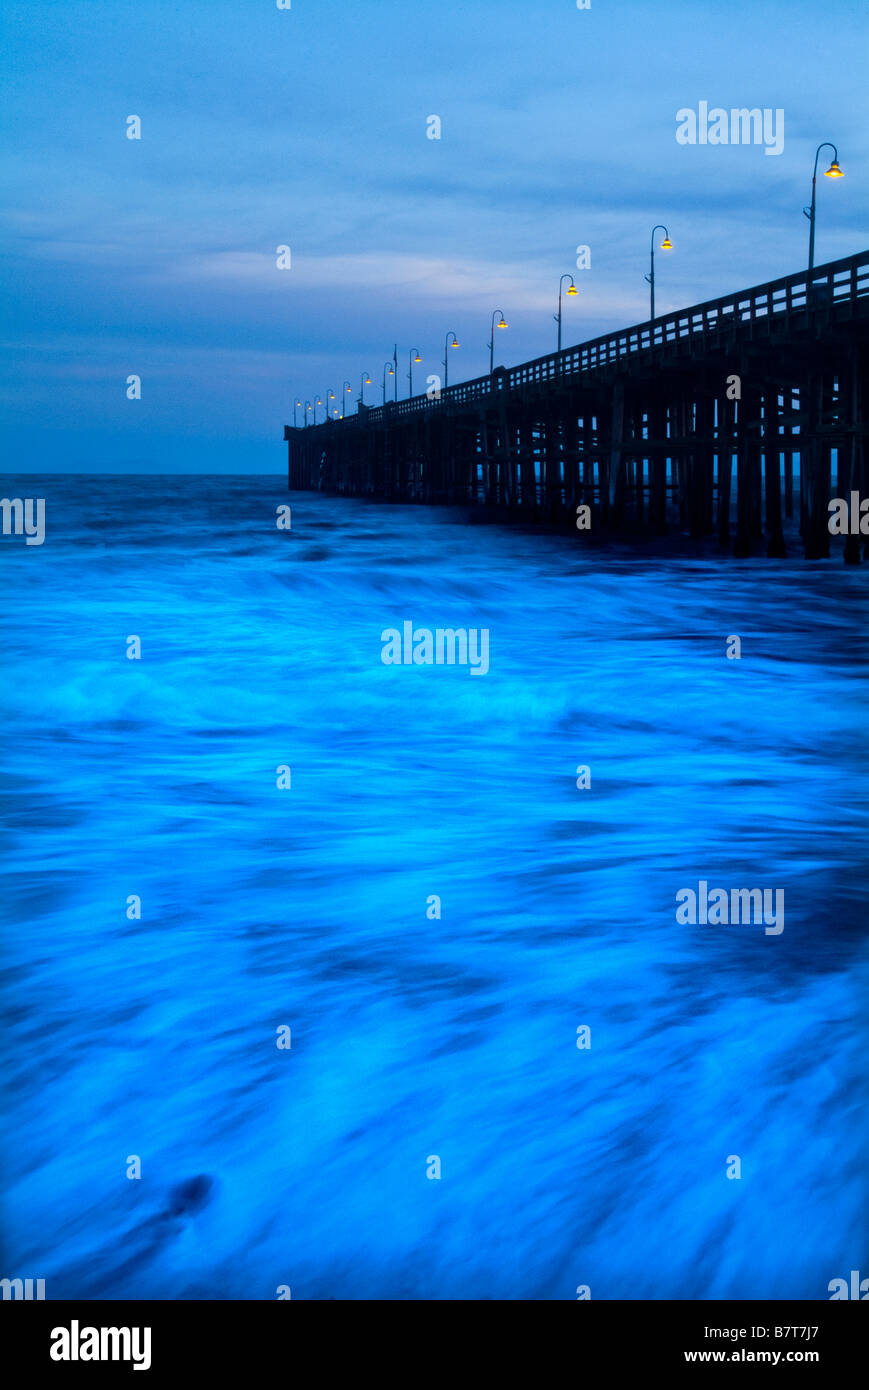 Waves Ocean Motion Blur & Ventura Pier, Ventura California USA Stock Photo